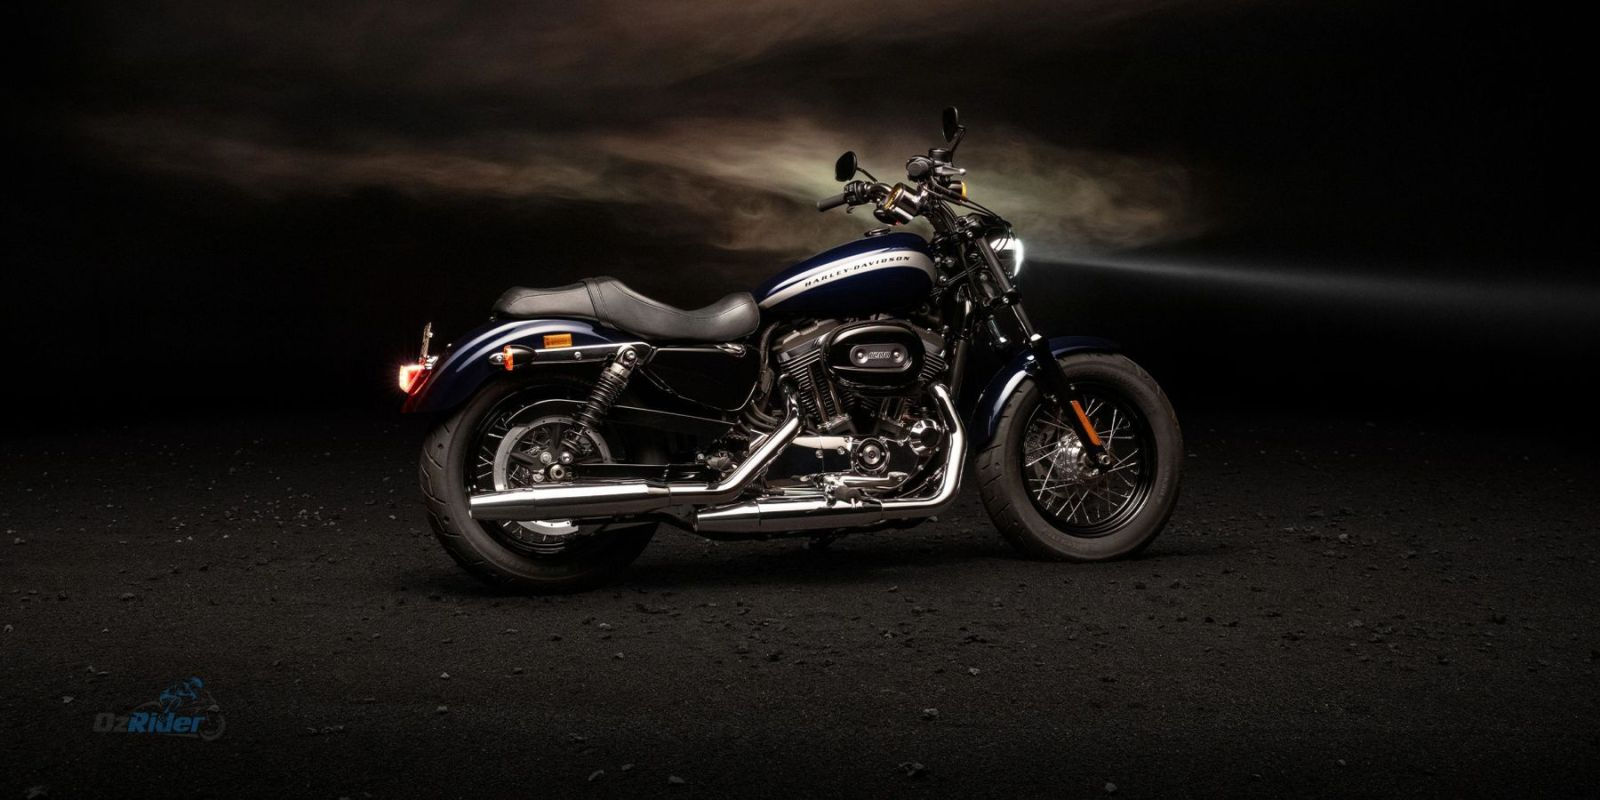 End of the Road for the Harley-Davidson Sportster in Europe